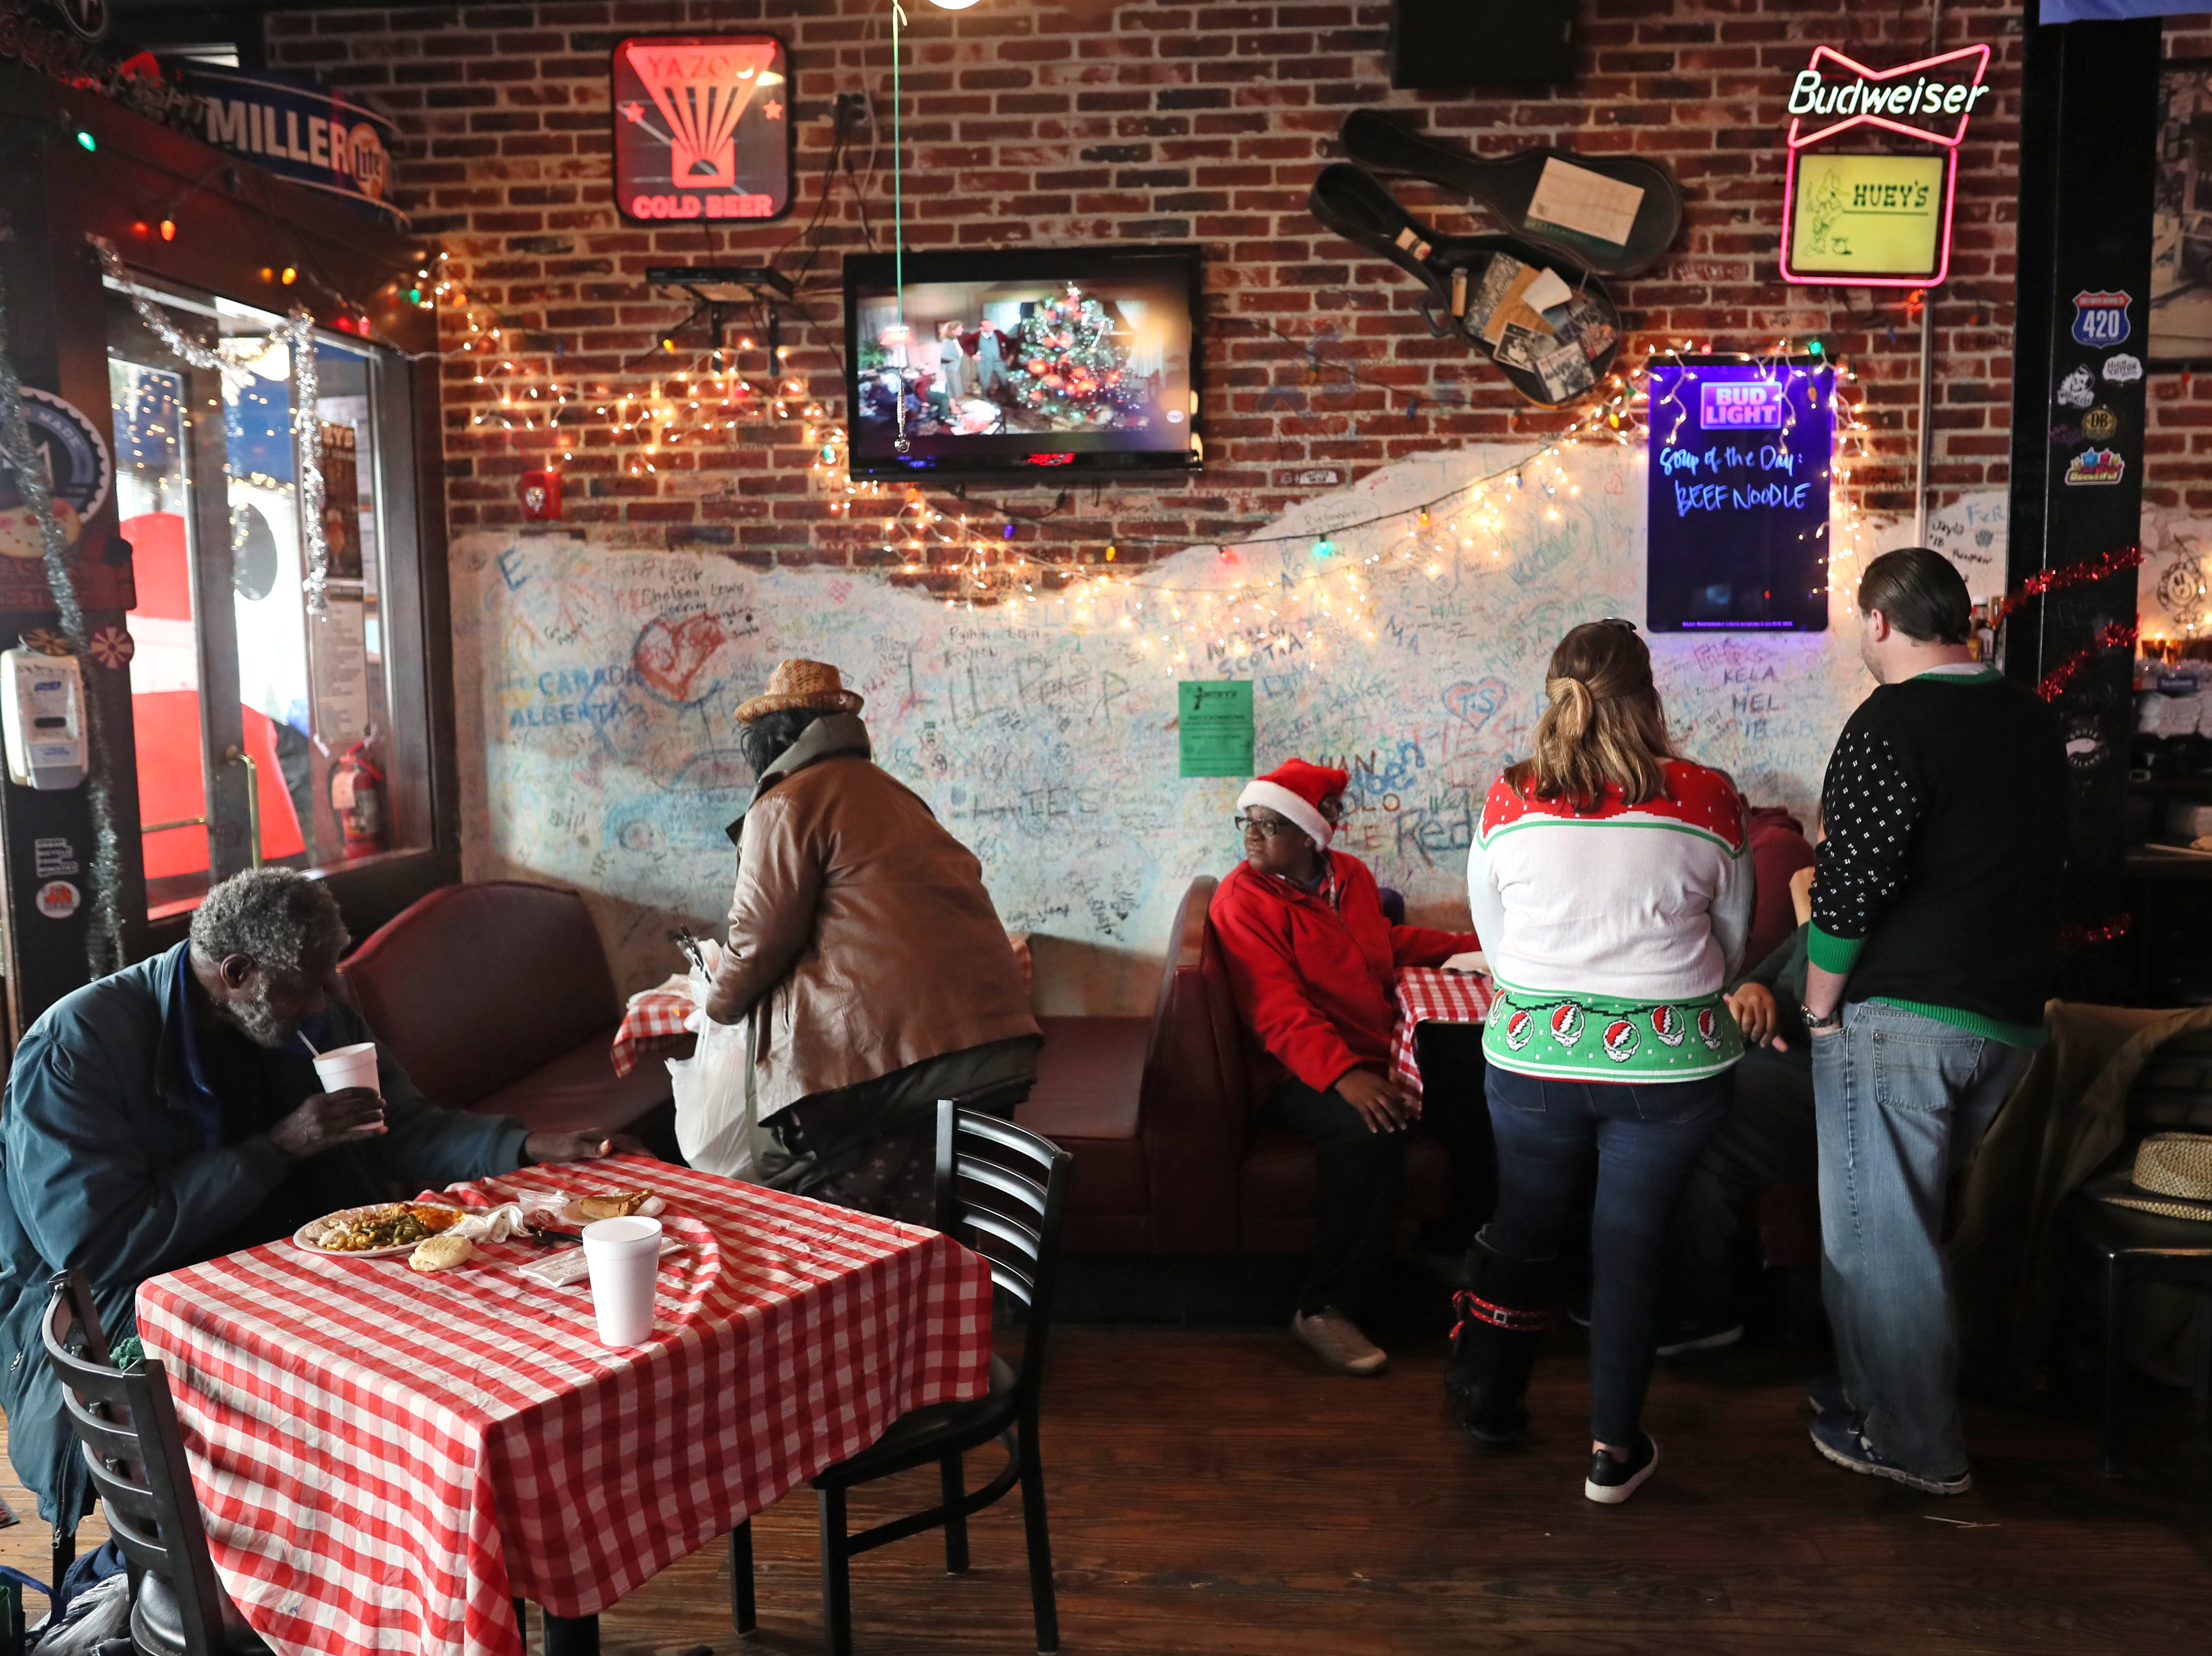 Volunteers serve turkey with all the trimmings and hand out warm clothing at the Huey's downtown restaurant on Christmas Day Tuesday, Dec. 25, 2018.